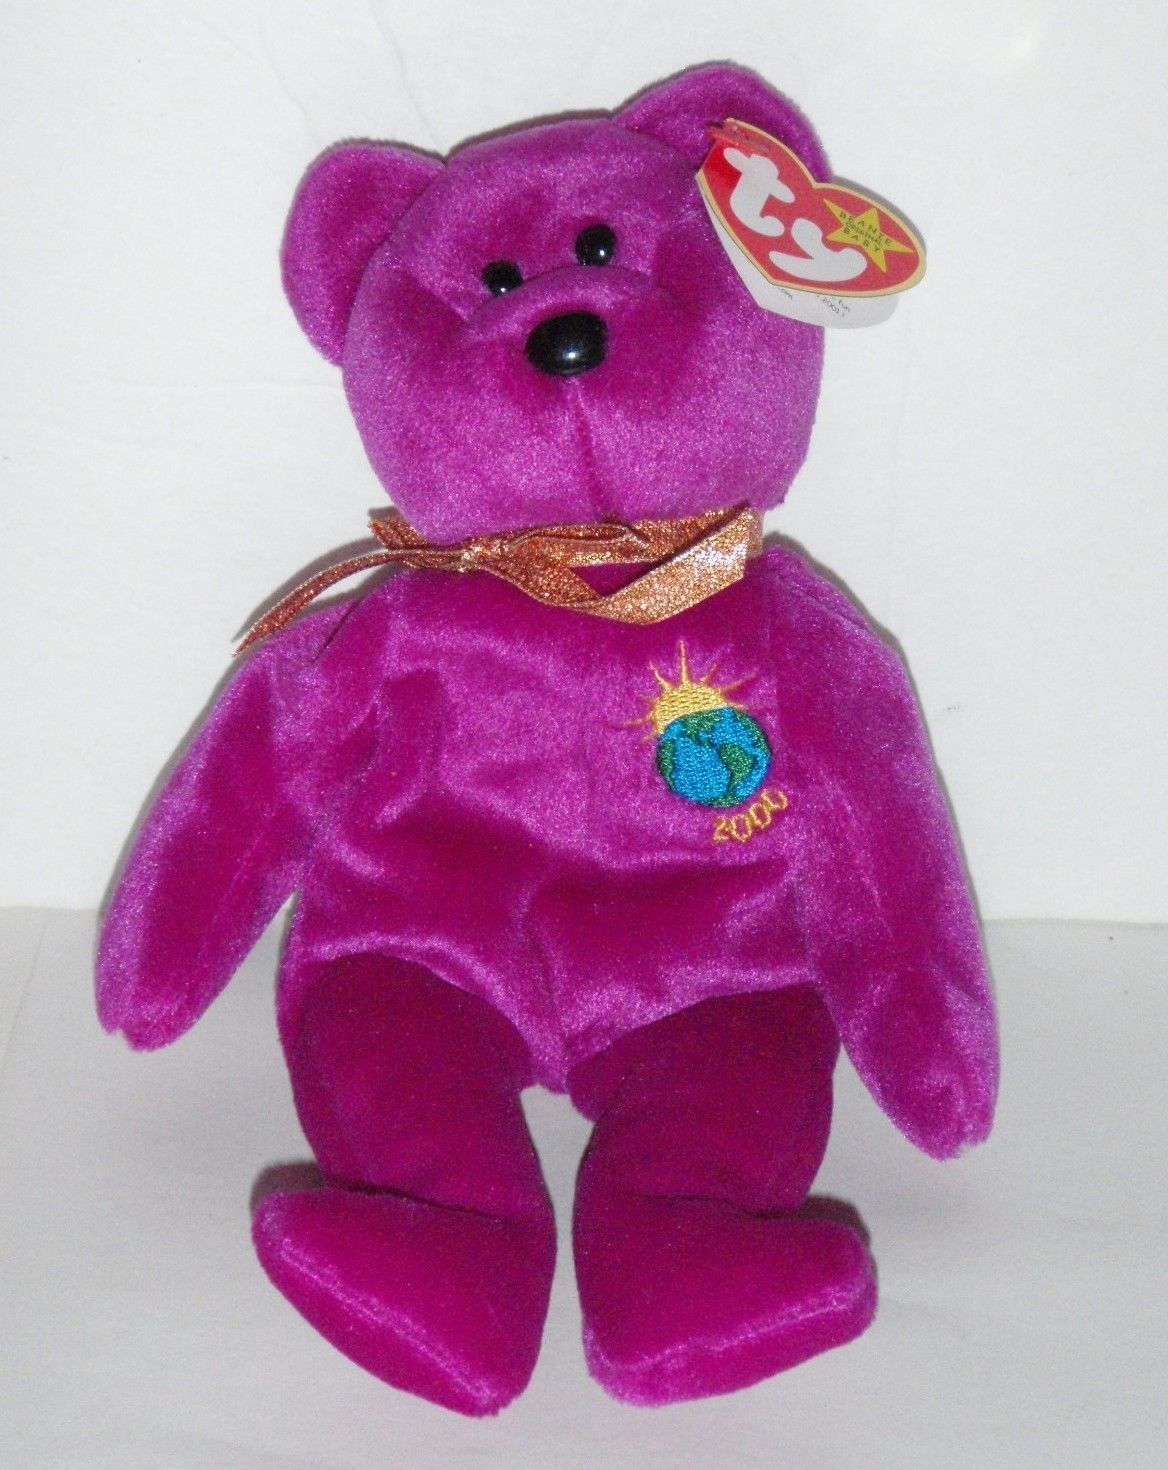 Beanie Babies Error Price Guide  fb5ac2c2a1e